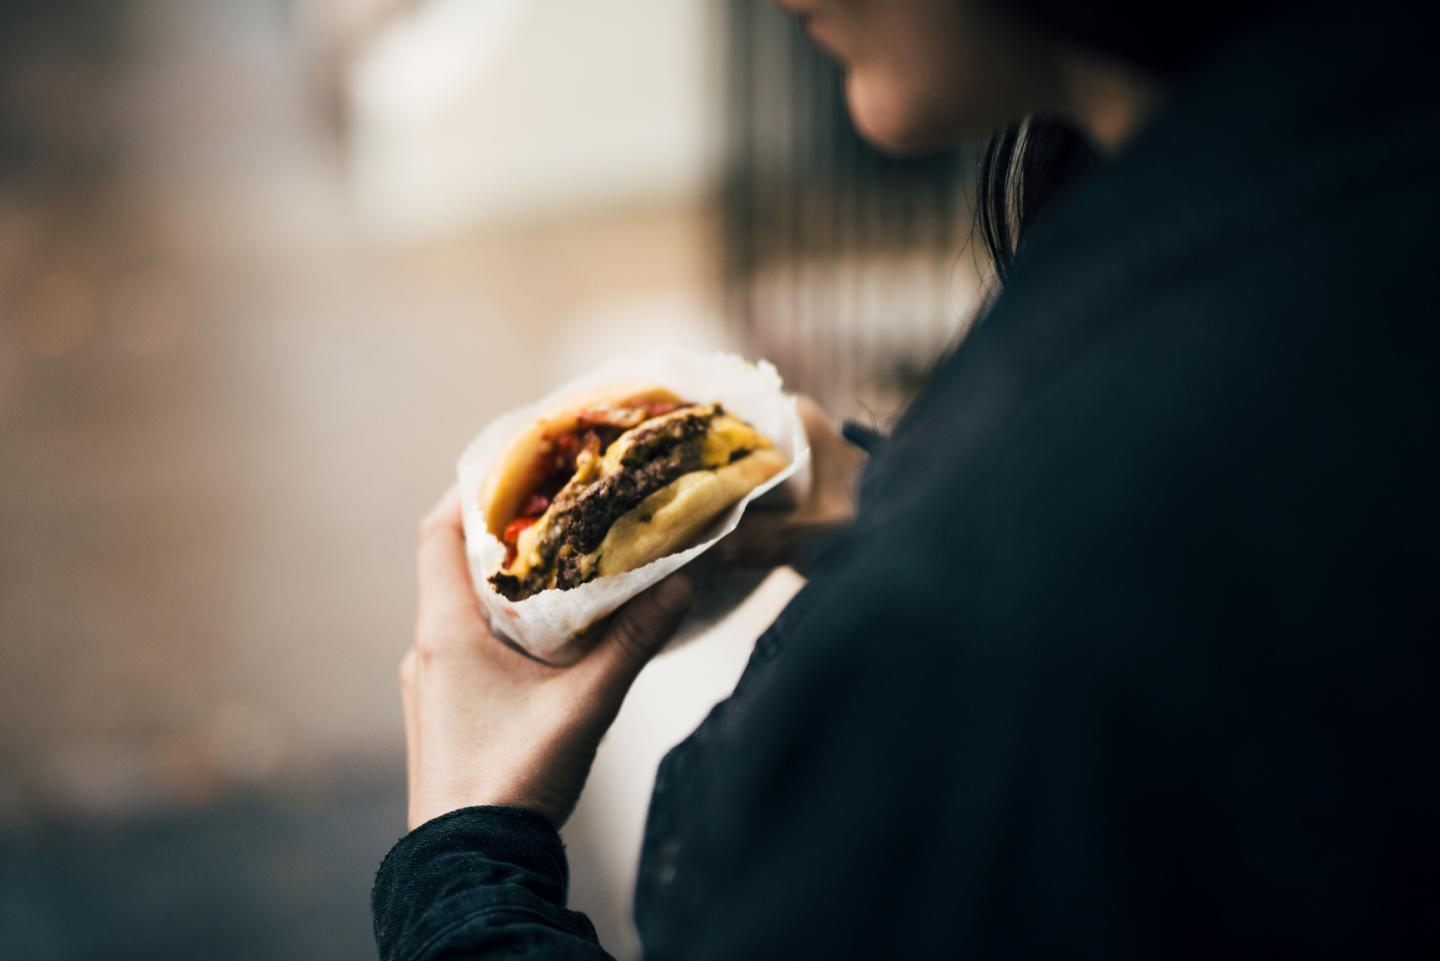 Dining Out Associated with Increased Exposure to Harmful Chemicals Called Phthalates